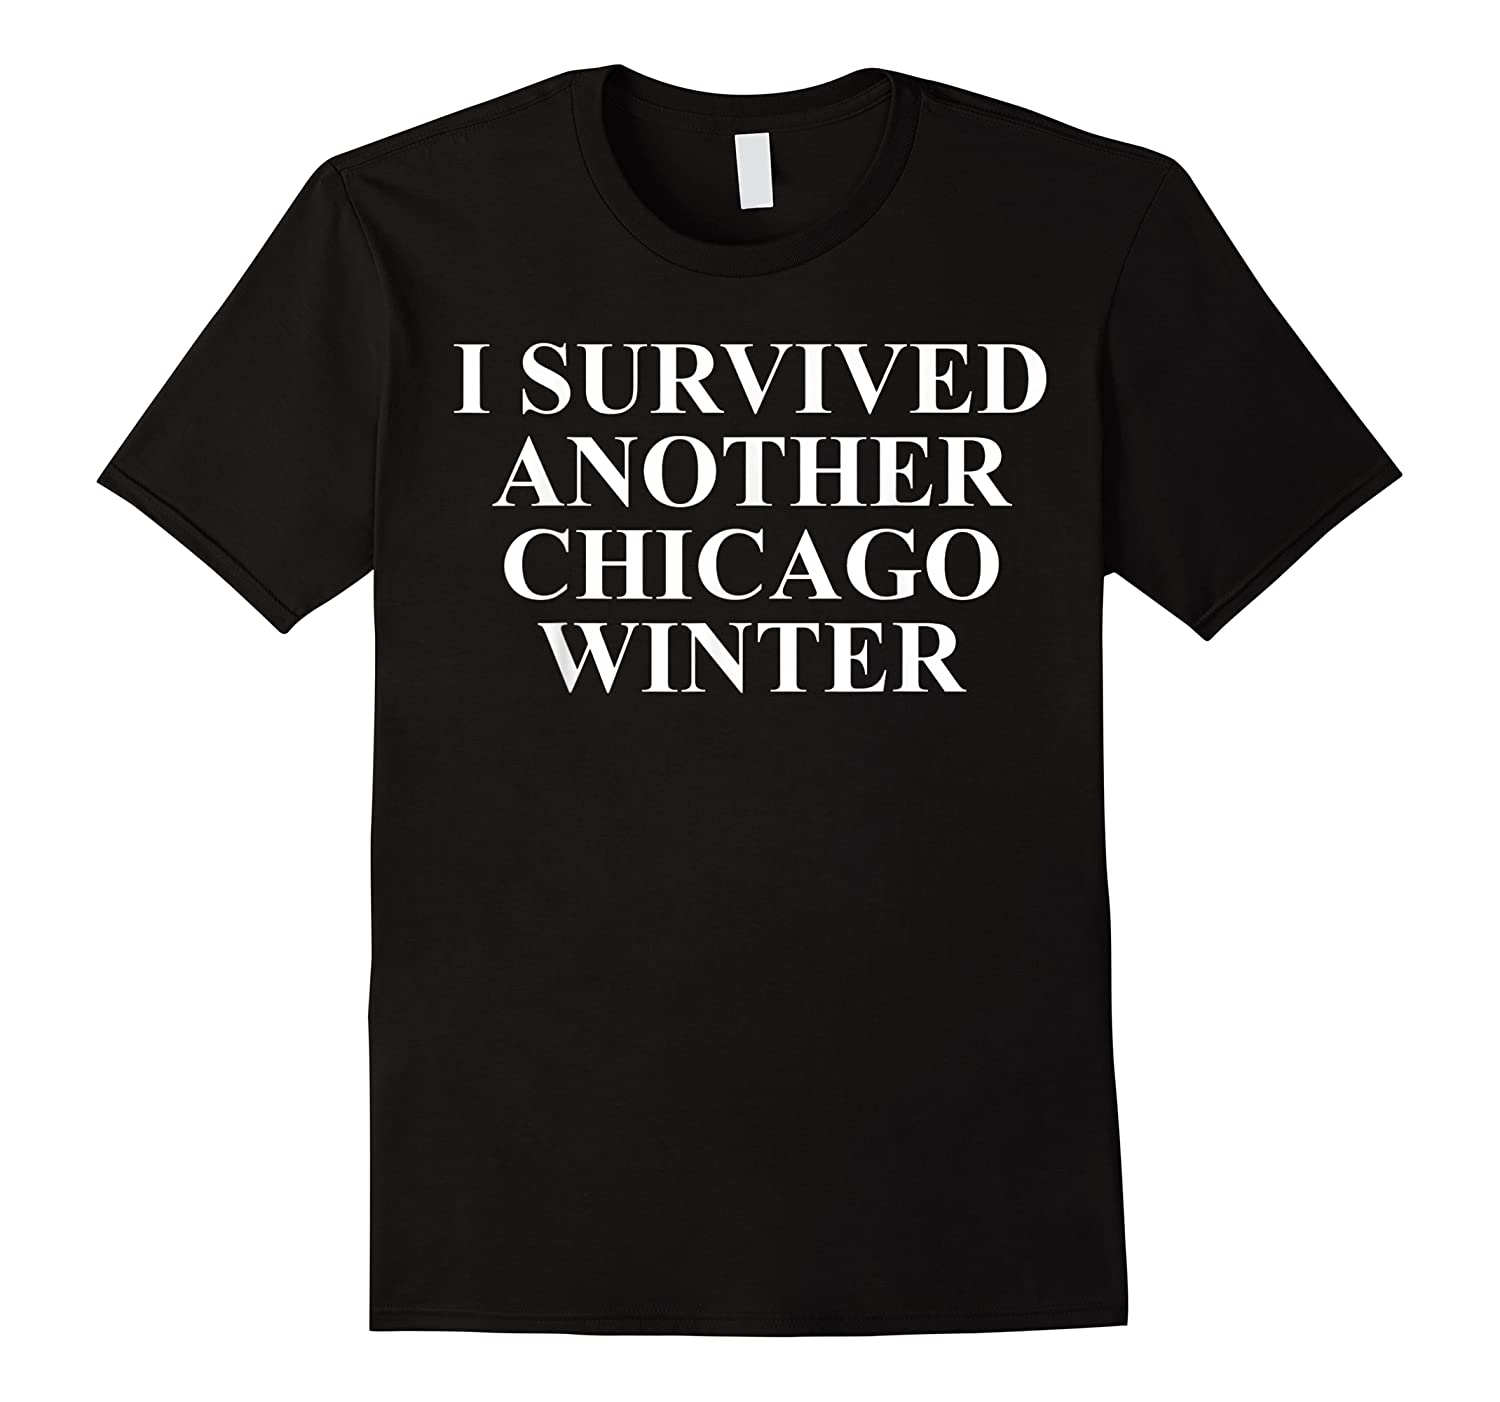 Funny Chicago Tshirts For Gifts For Chicago Residents